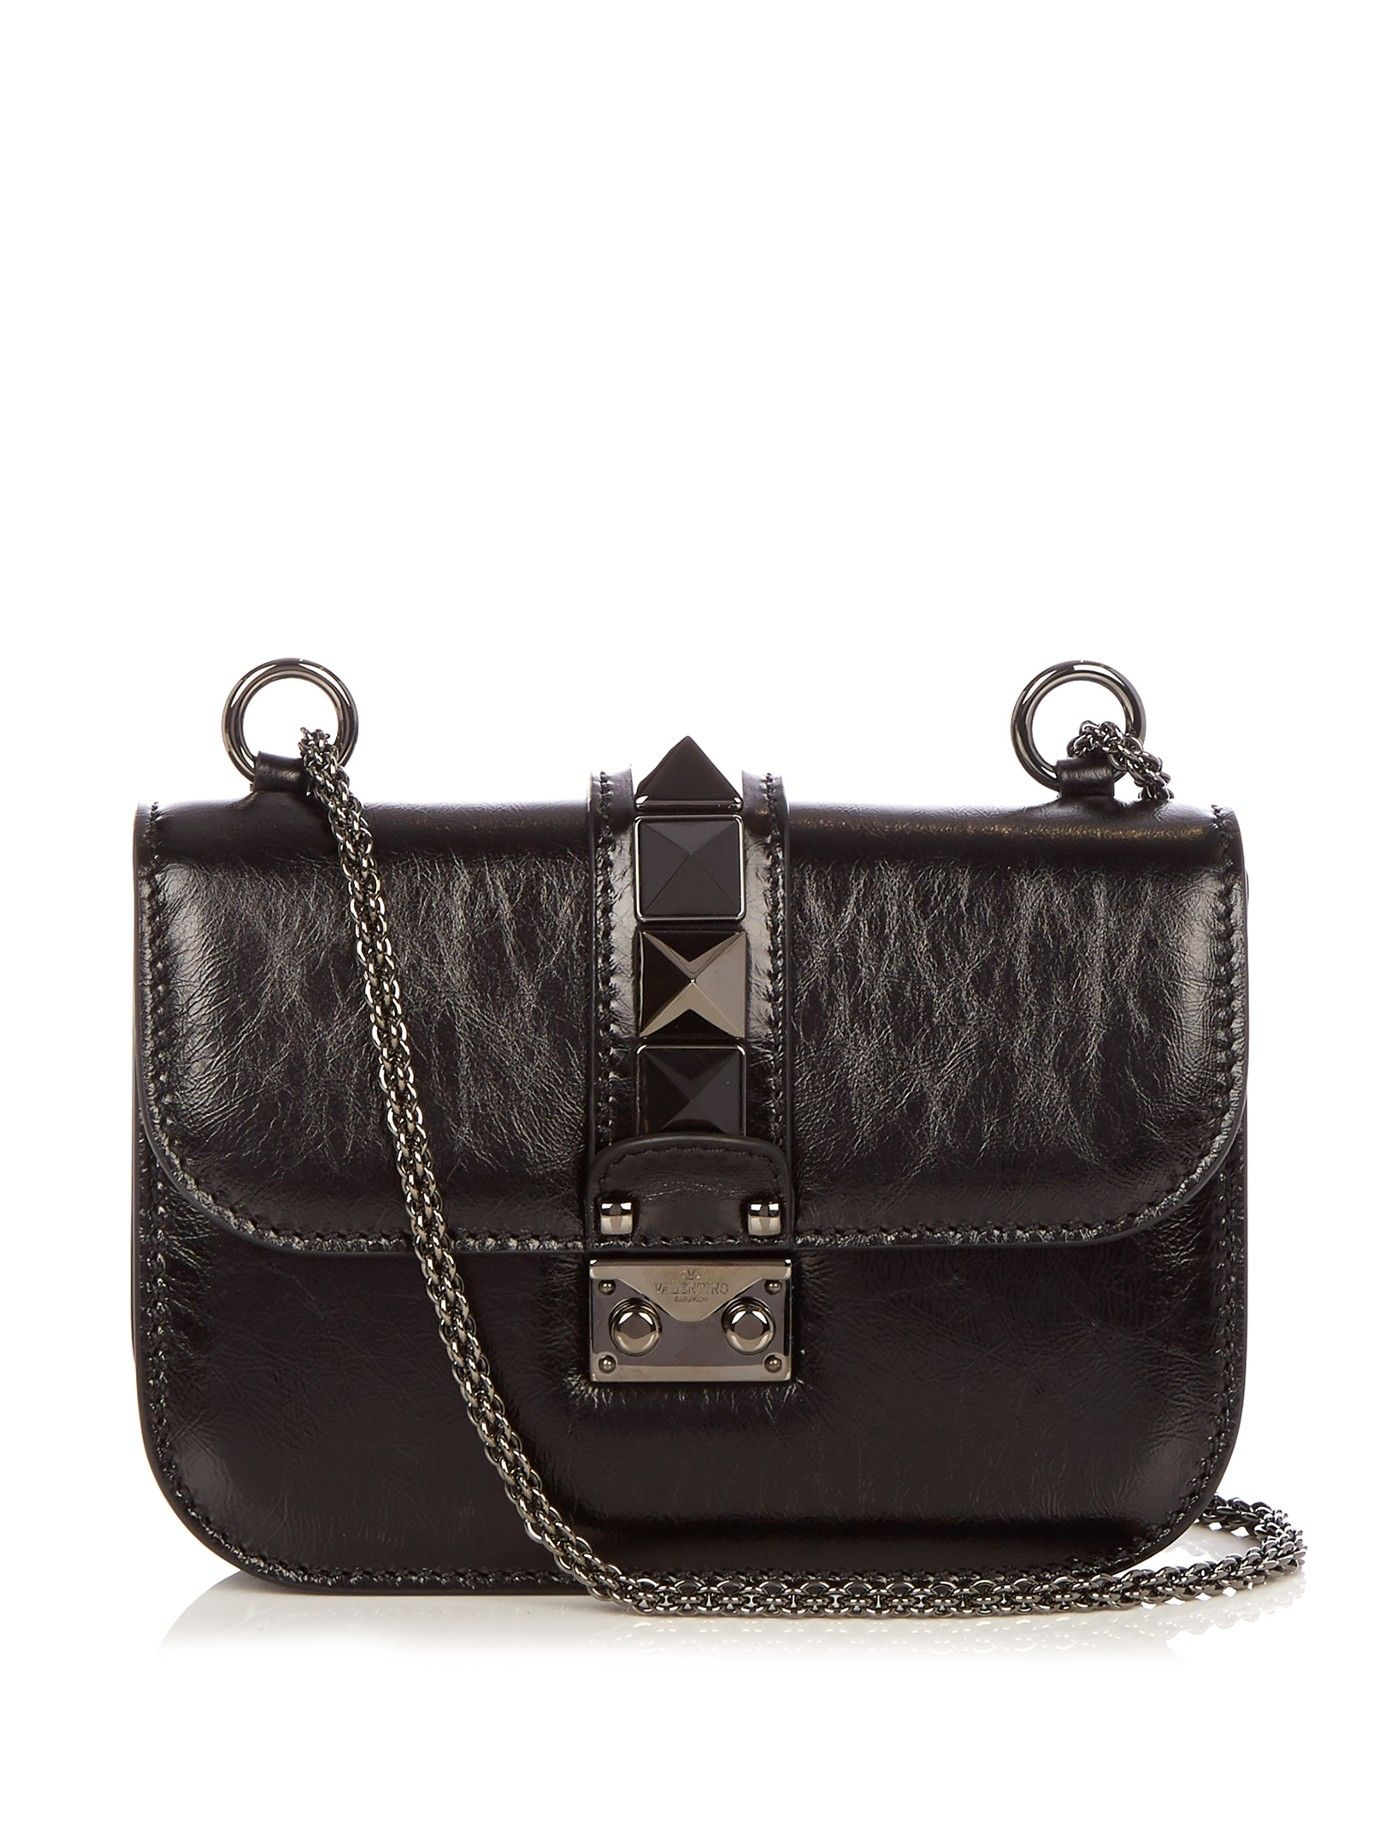 Lock Rolling small leather shoulder bag | Valentino | MATCHESFASHION.COM